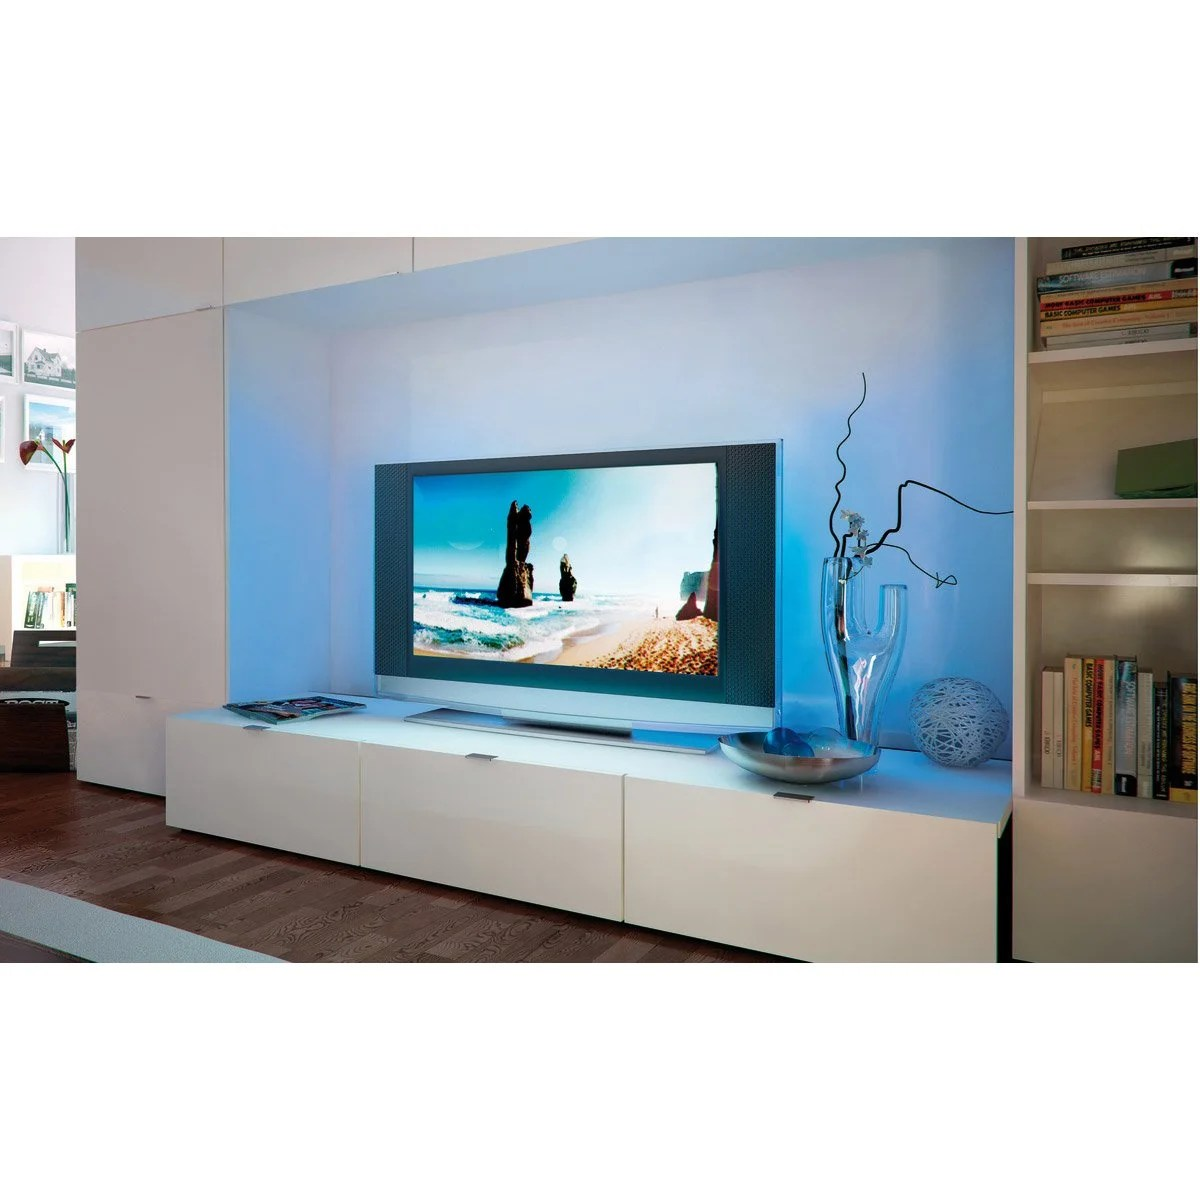 Installer Ruban Led Sur Meuble Ruban Led Tv 2 X 5m Multicolore 3000k Paulmann Leroy